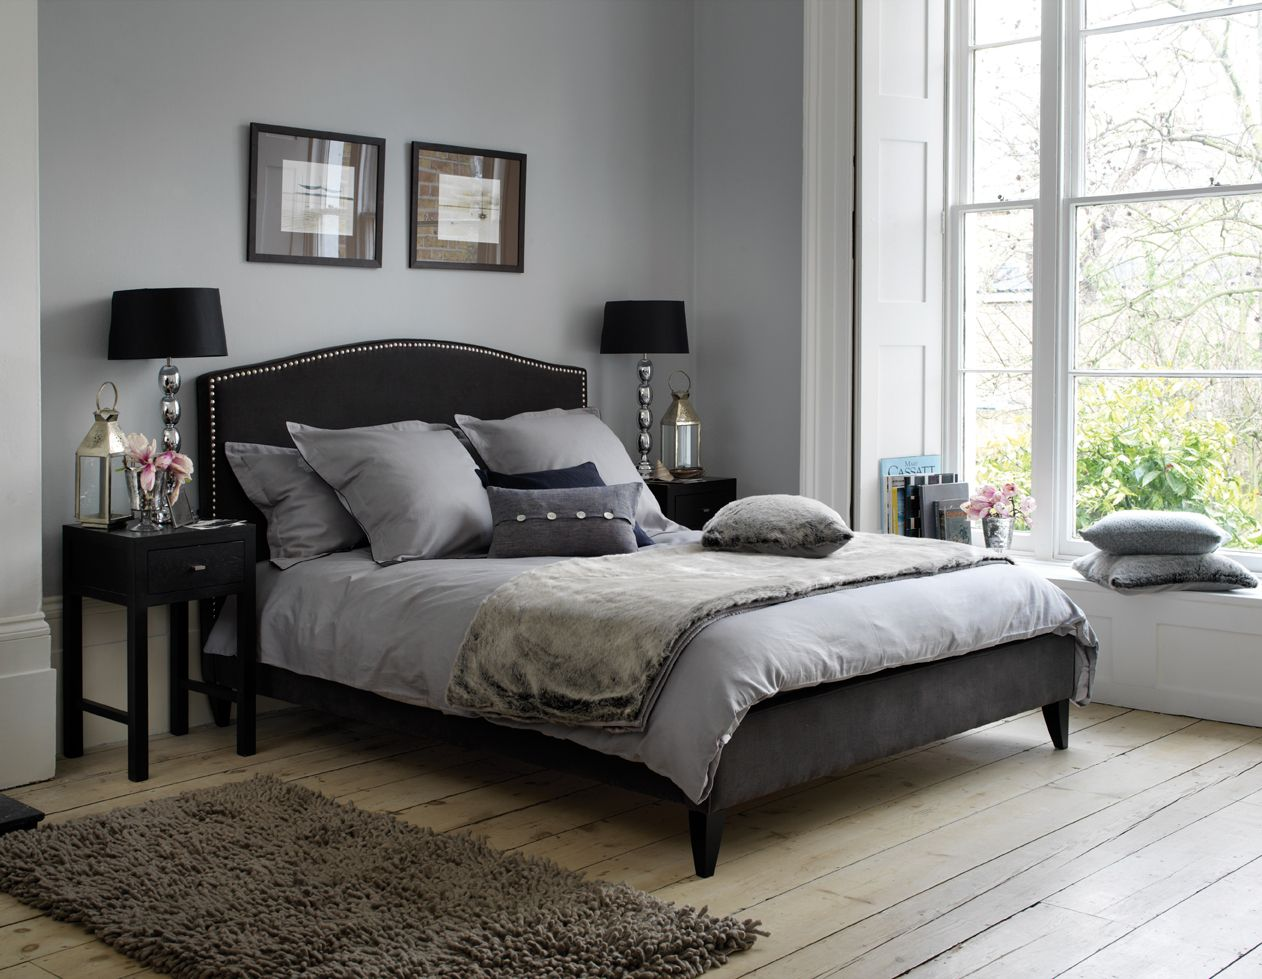 Attirant Gray Bedroom Bedding | Grey Bedroom With Black Bed And